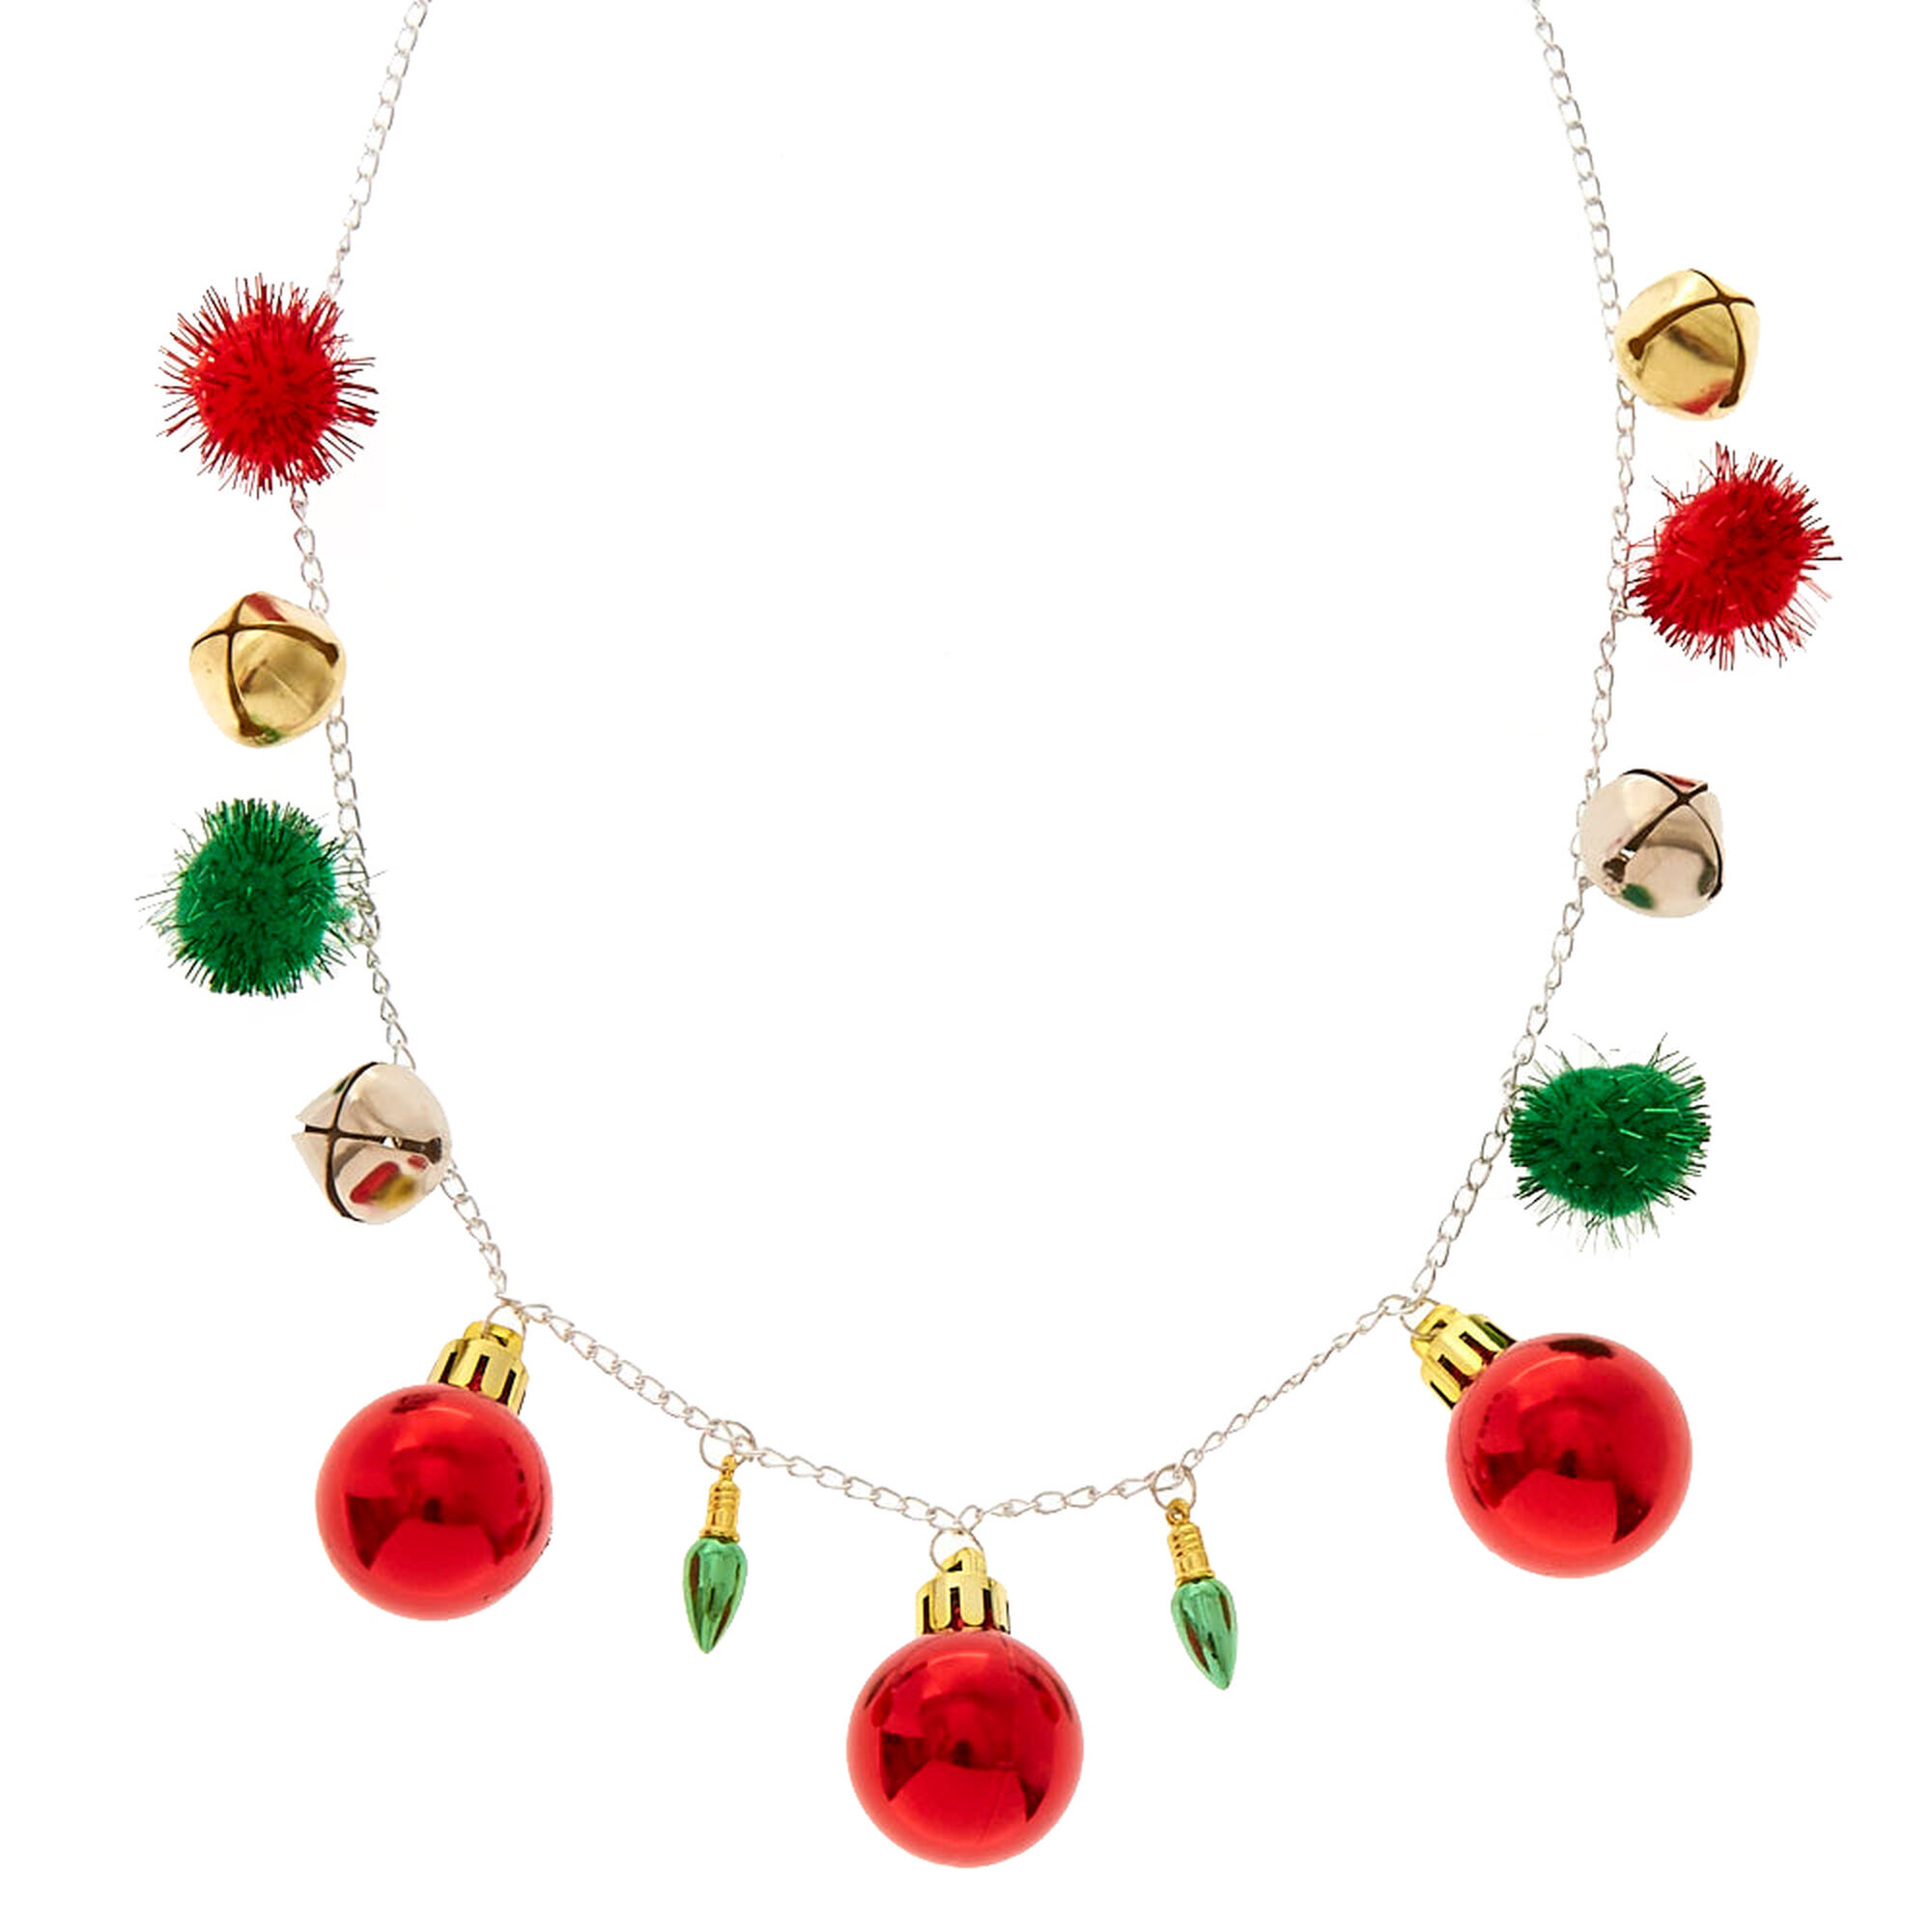 Crazy christmas necklace claires crazy christmas necklace aloadofball Image collections